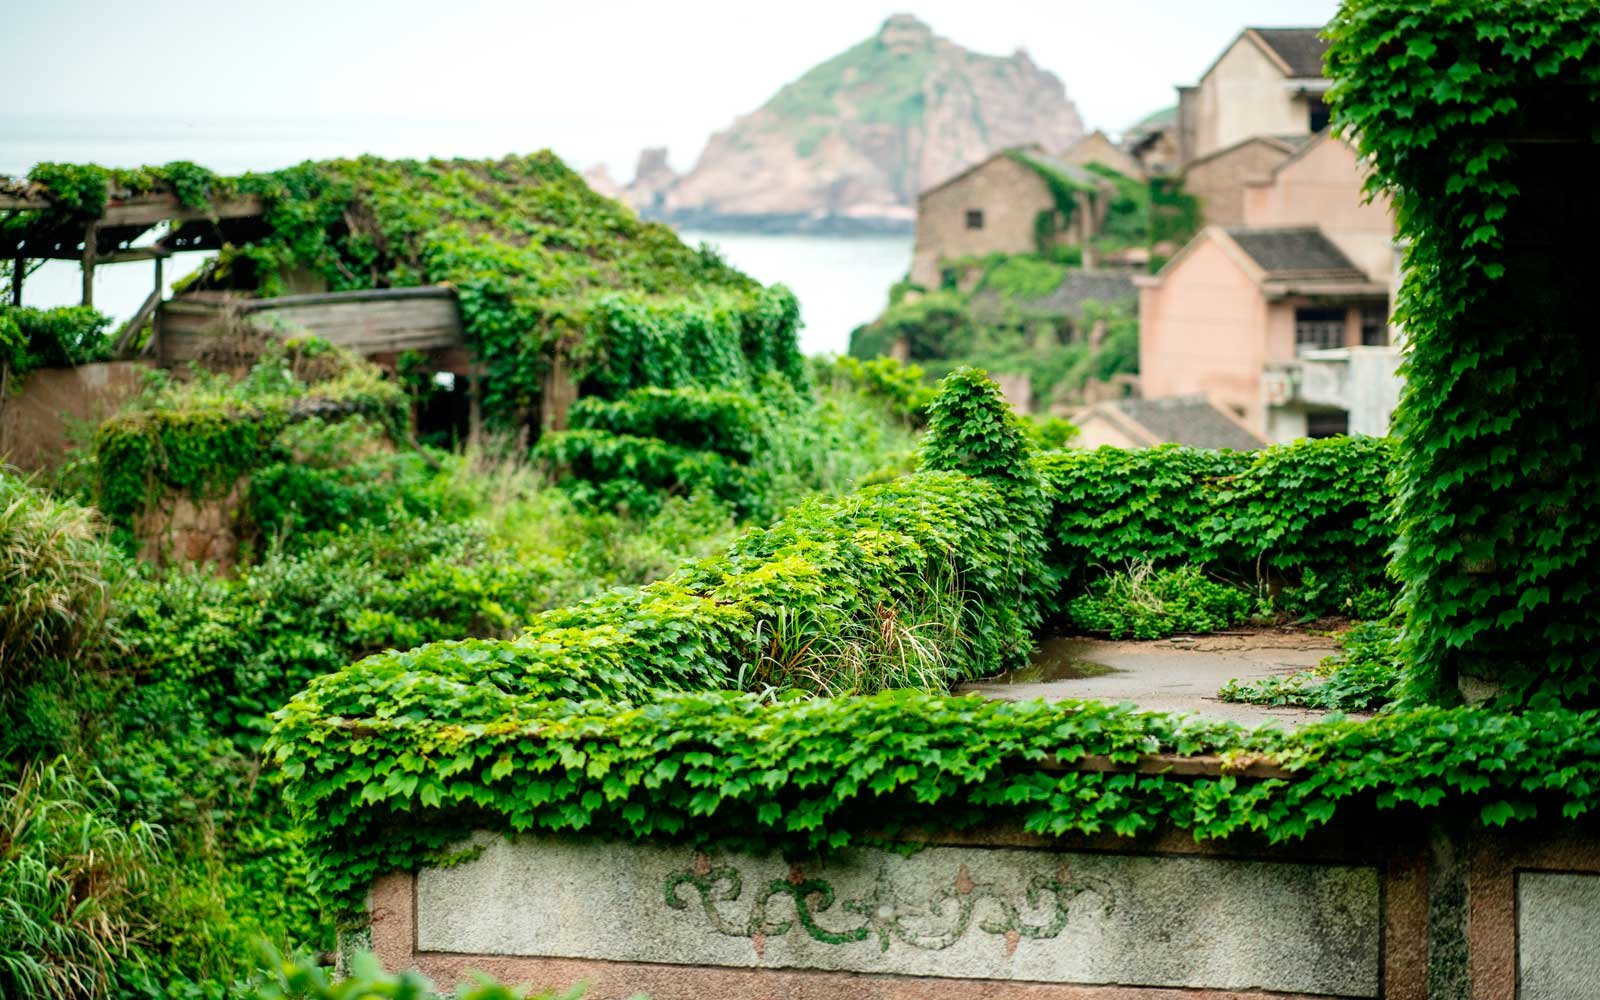 This picture taken on May 31, 2018 shows abandoned village houses covered with overgrown vegetation in Houtouwan on Shengshan island, China